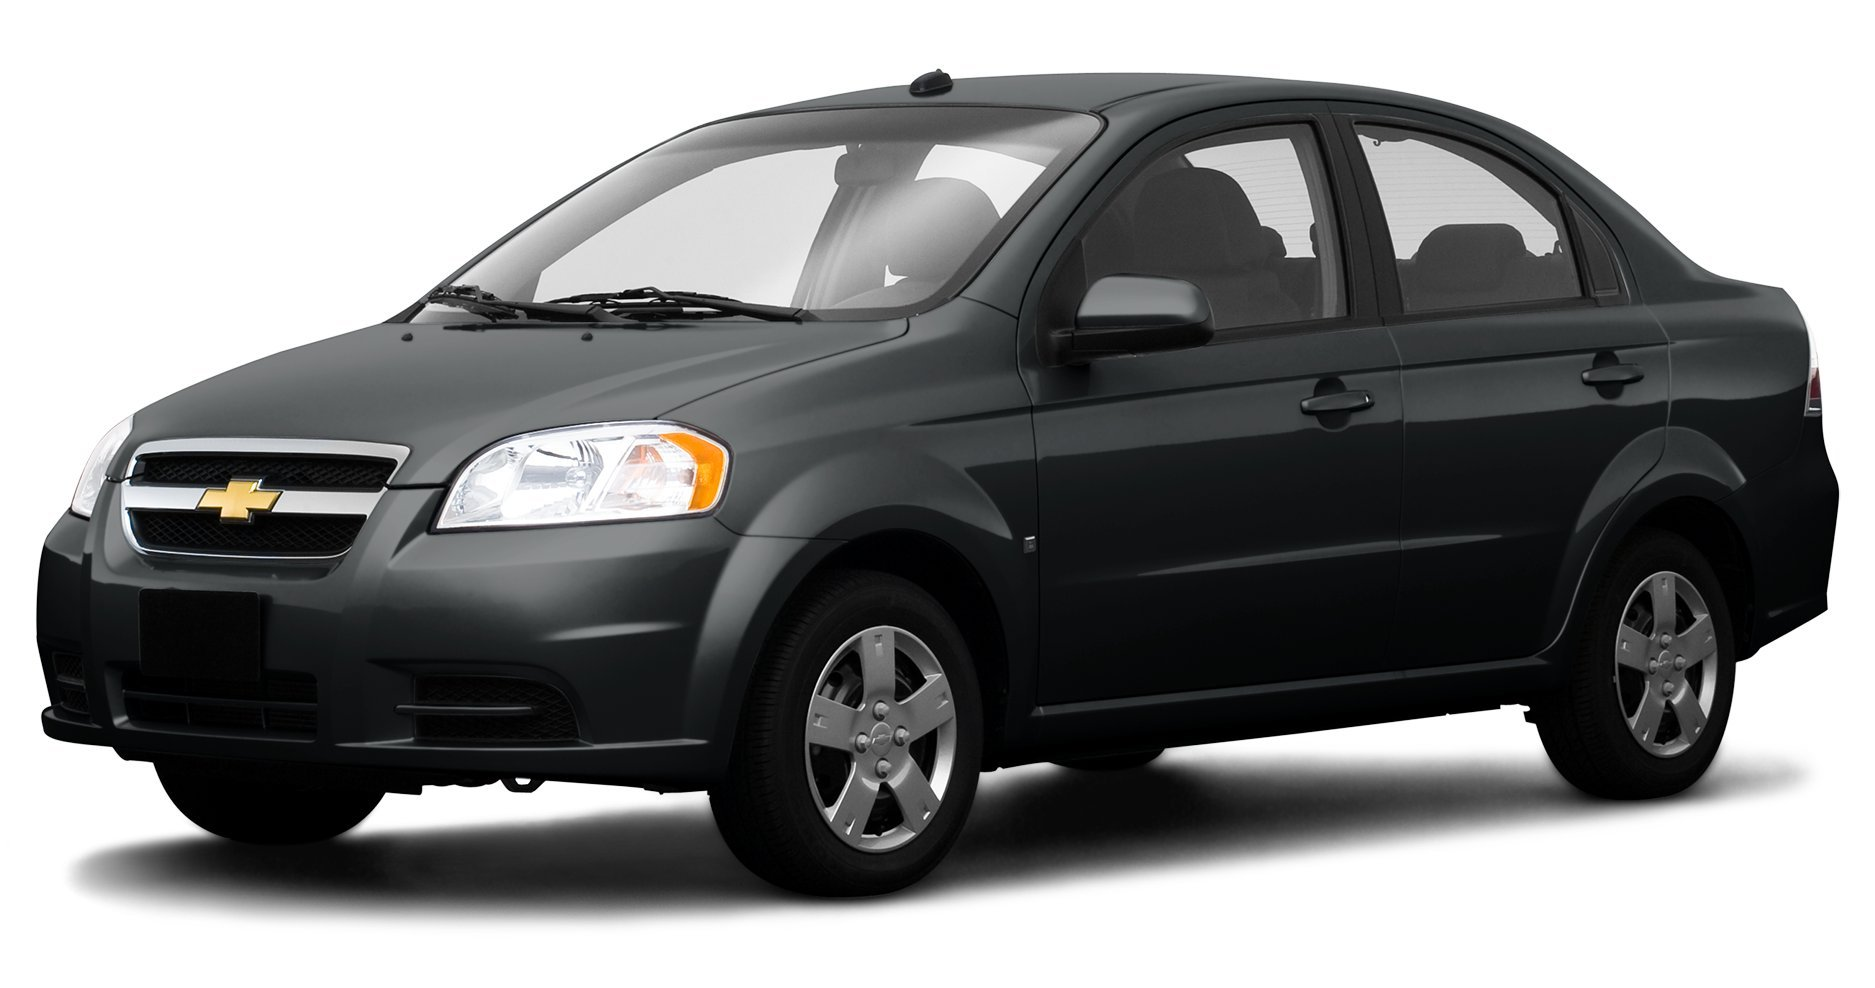 2009 chevrolet aveo reviews images and specs. Black Bedroom Furniture Sets. Home Design Ideas